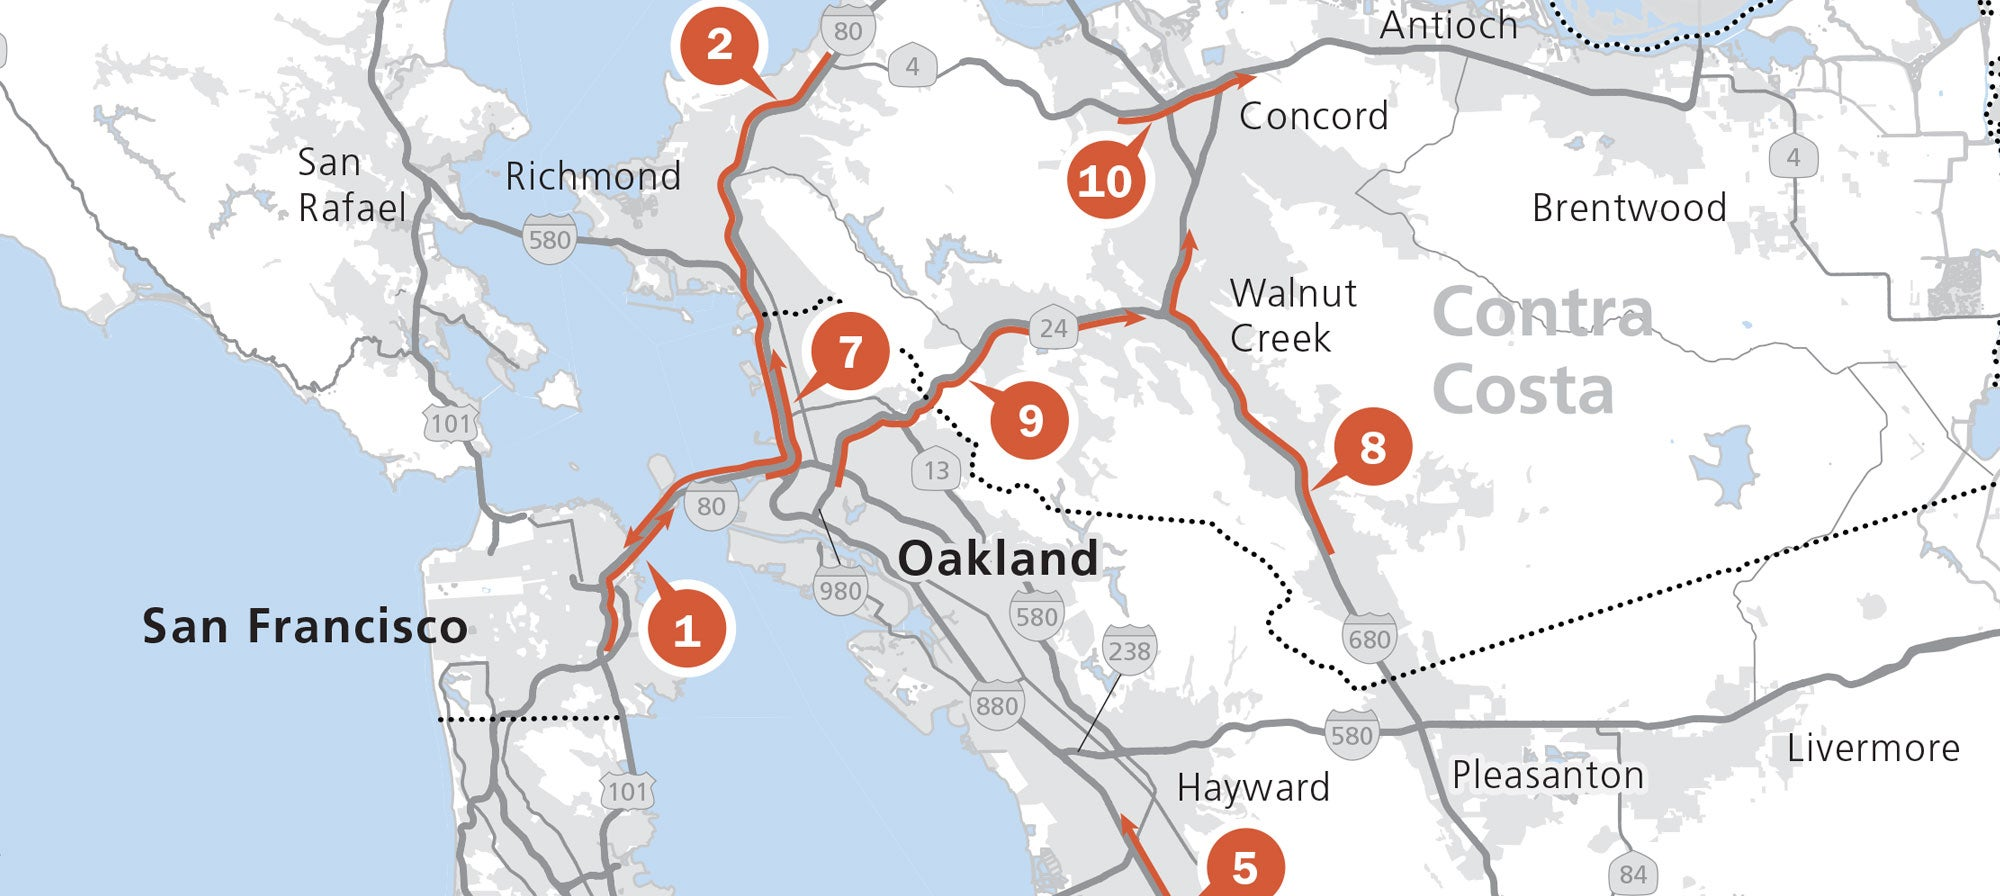 Bay Area Vital Signs: Freeway Congestion Hits New Record